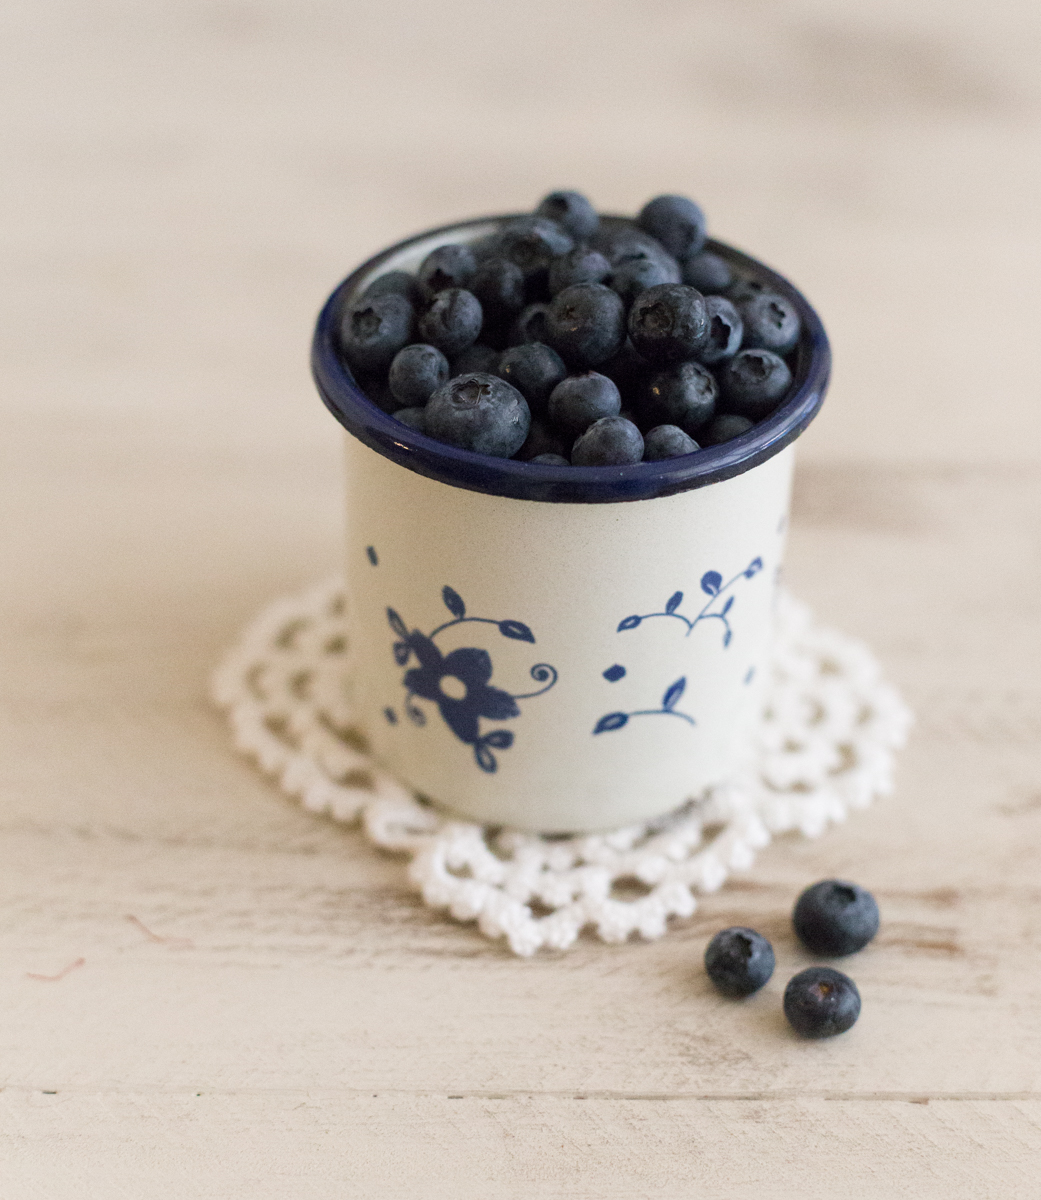 blueberries, arandanos